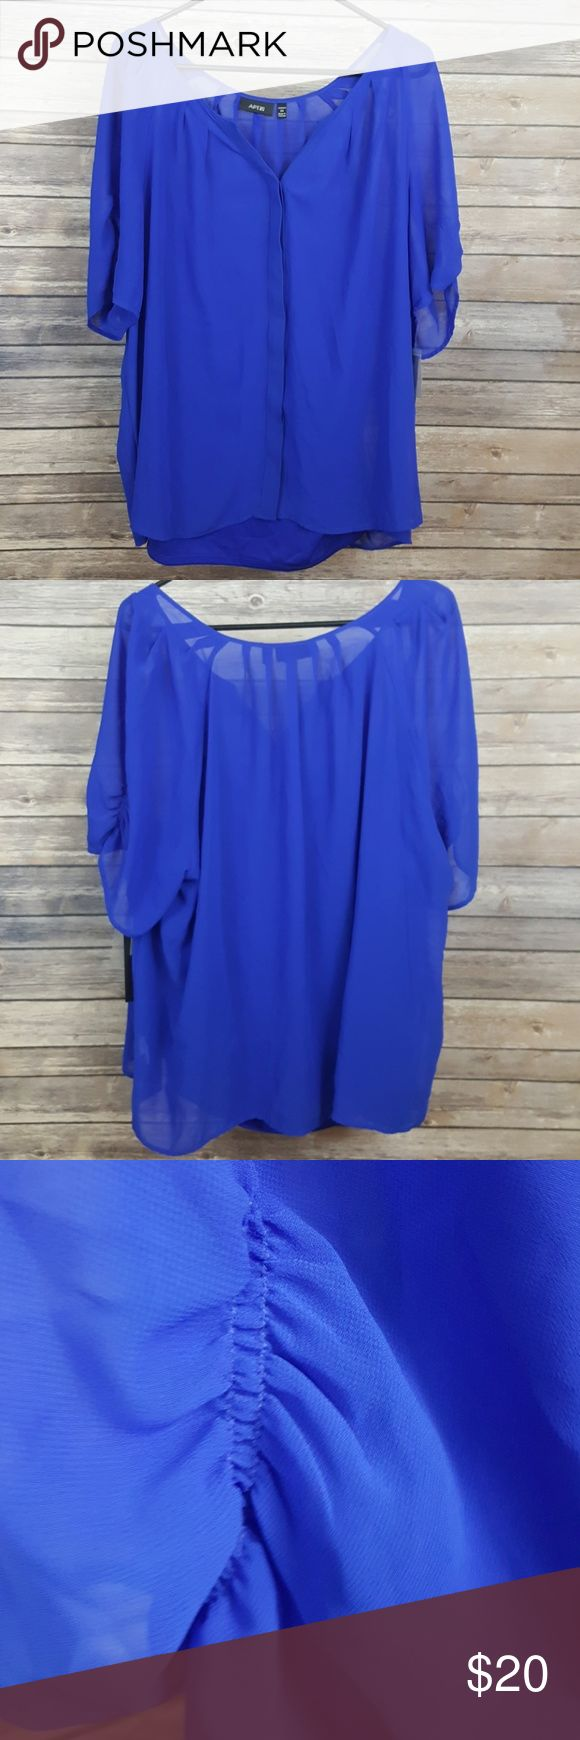 Apt 9 royal blue sheer button down & matching cami Apt 9 royal blue sheer button-down blouse with matching Cami. NWT  size 2 x Apt.9 Tops